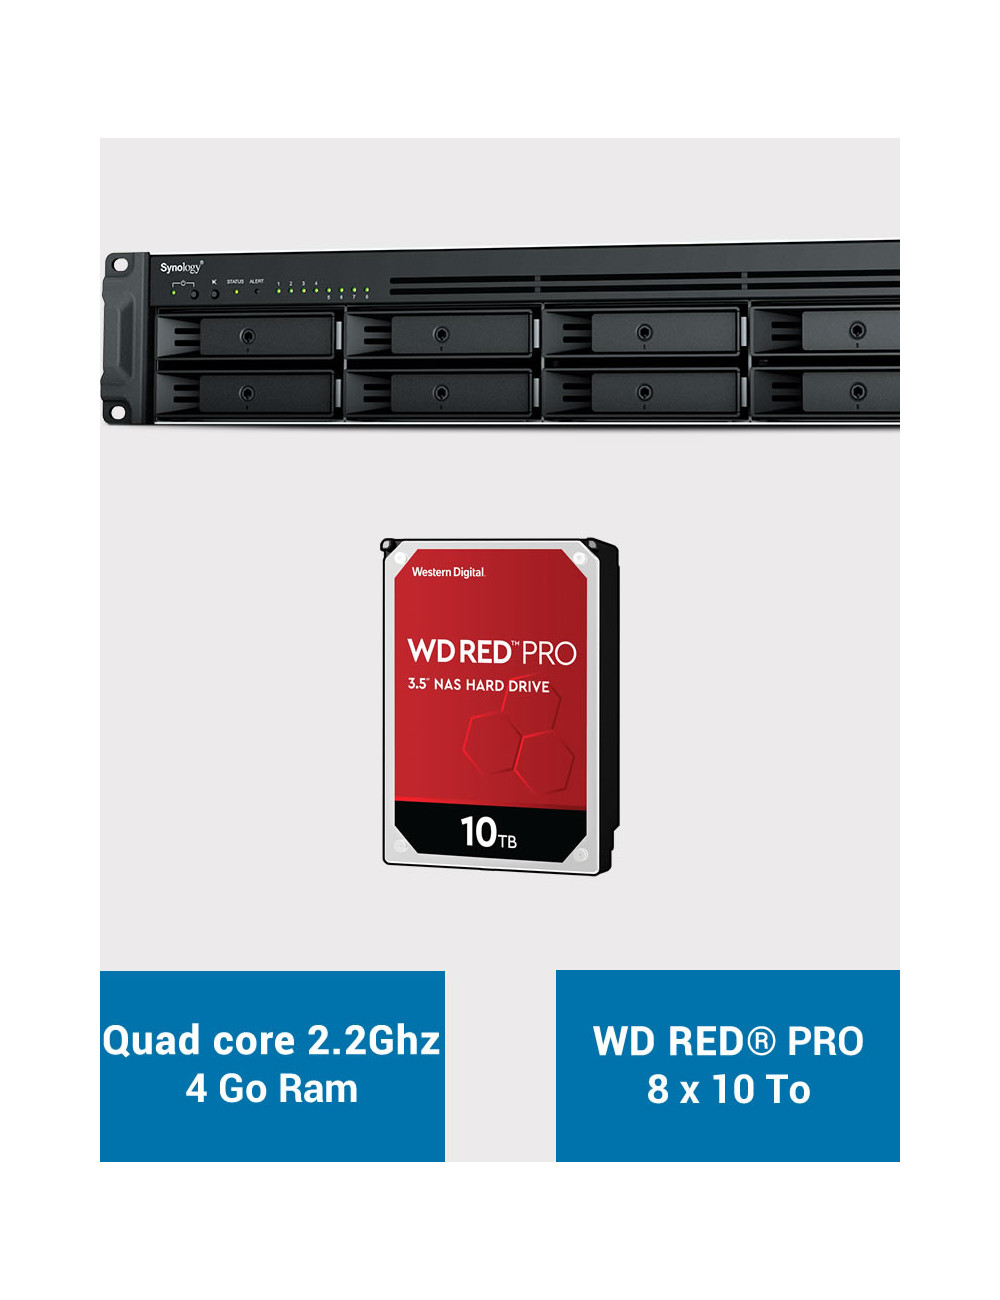 Synology RS1221+ Serveur NAS Rack WD RED PRO 80To (8x10To)